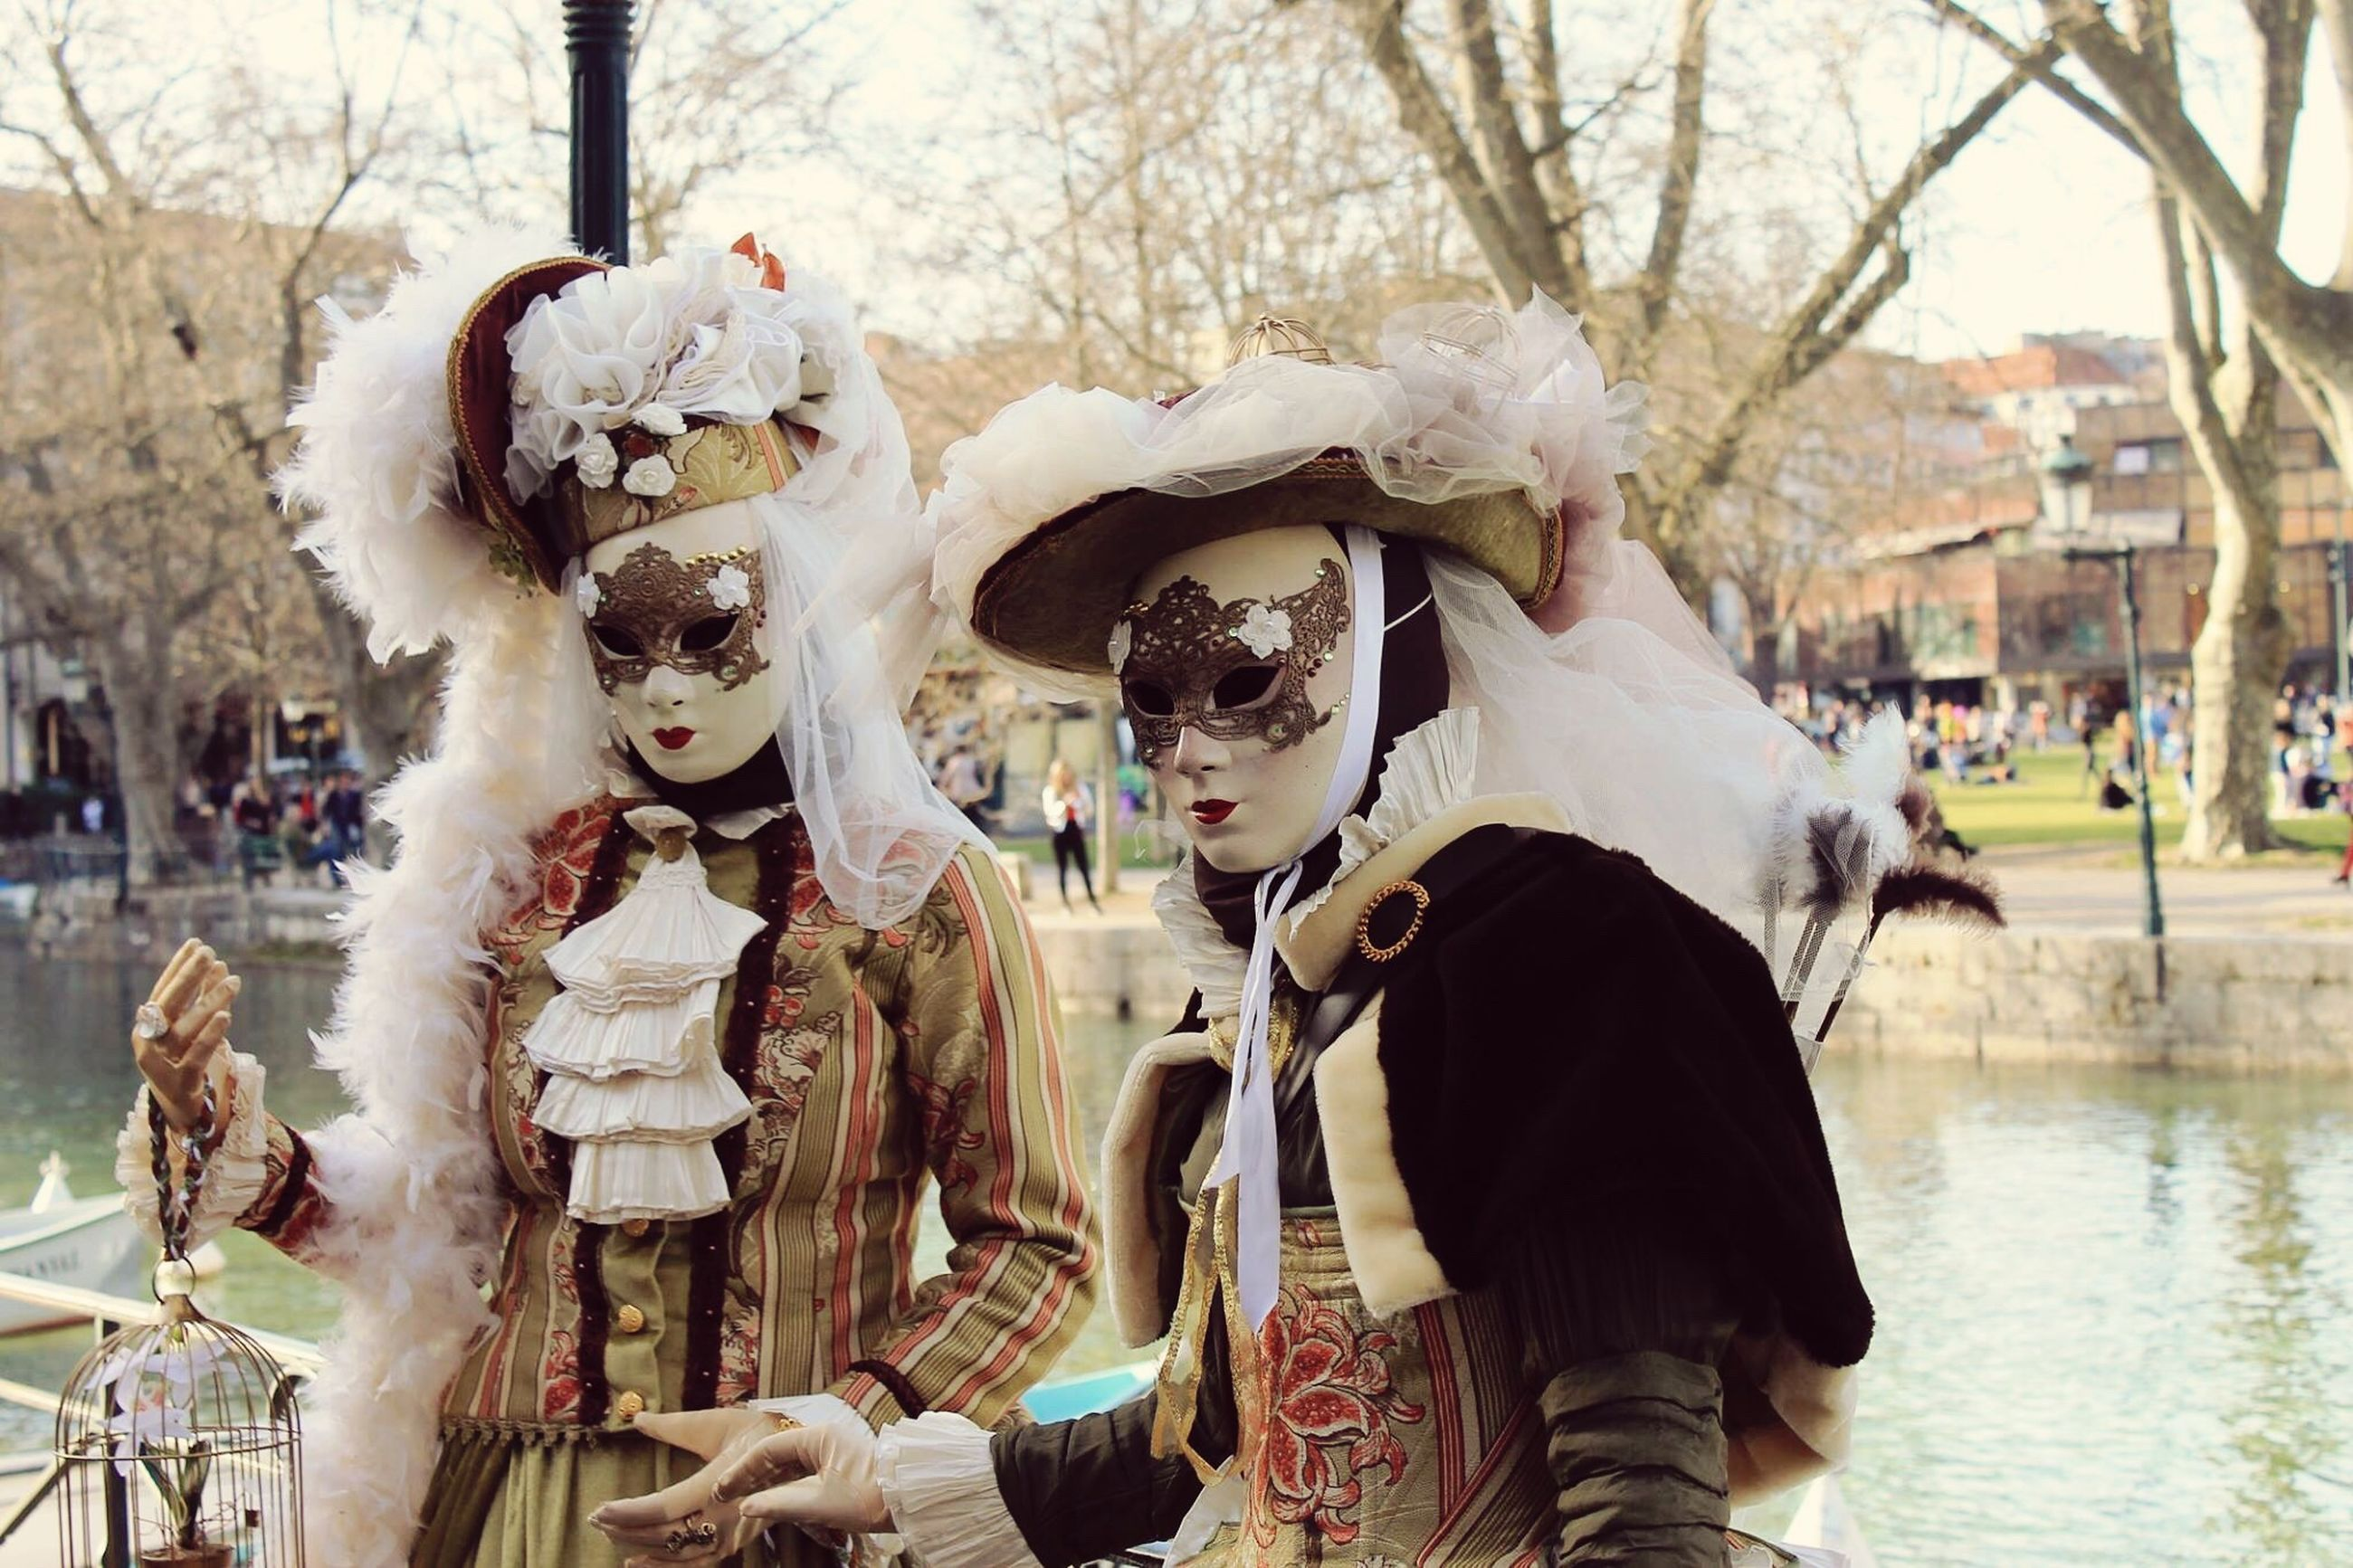 mask - disguise, celebration, cultures, unrecognizable person, venetian mask, outdoors, carnival - celebration event, leisure activity, traditional festival, adults only, people, day, adult